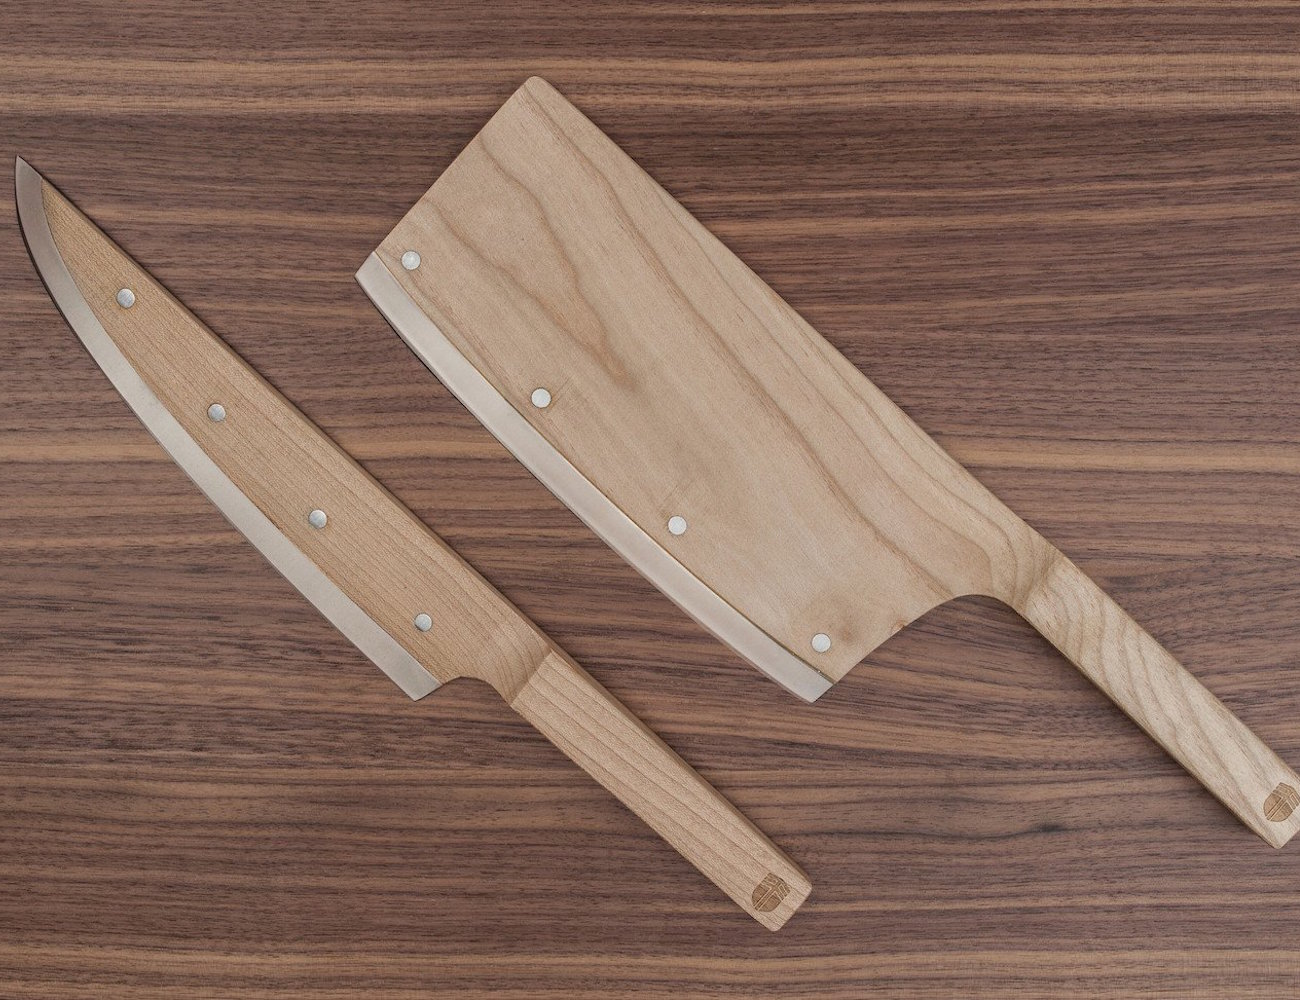 maple knife set kitchen knives perspective review kitchen knife ratings rated kitchen knives